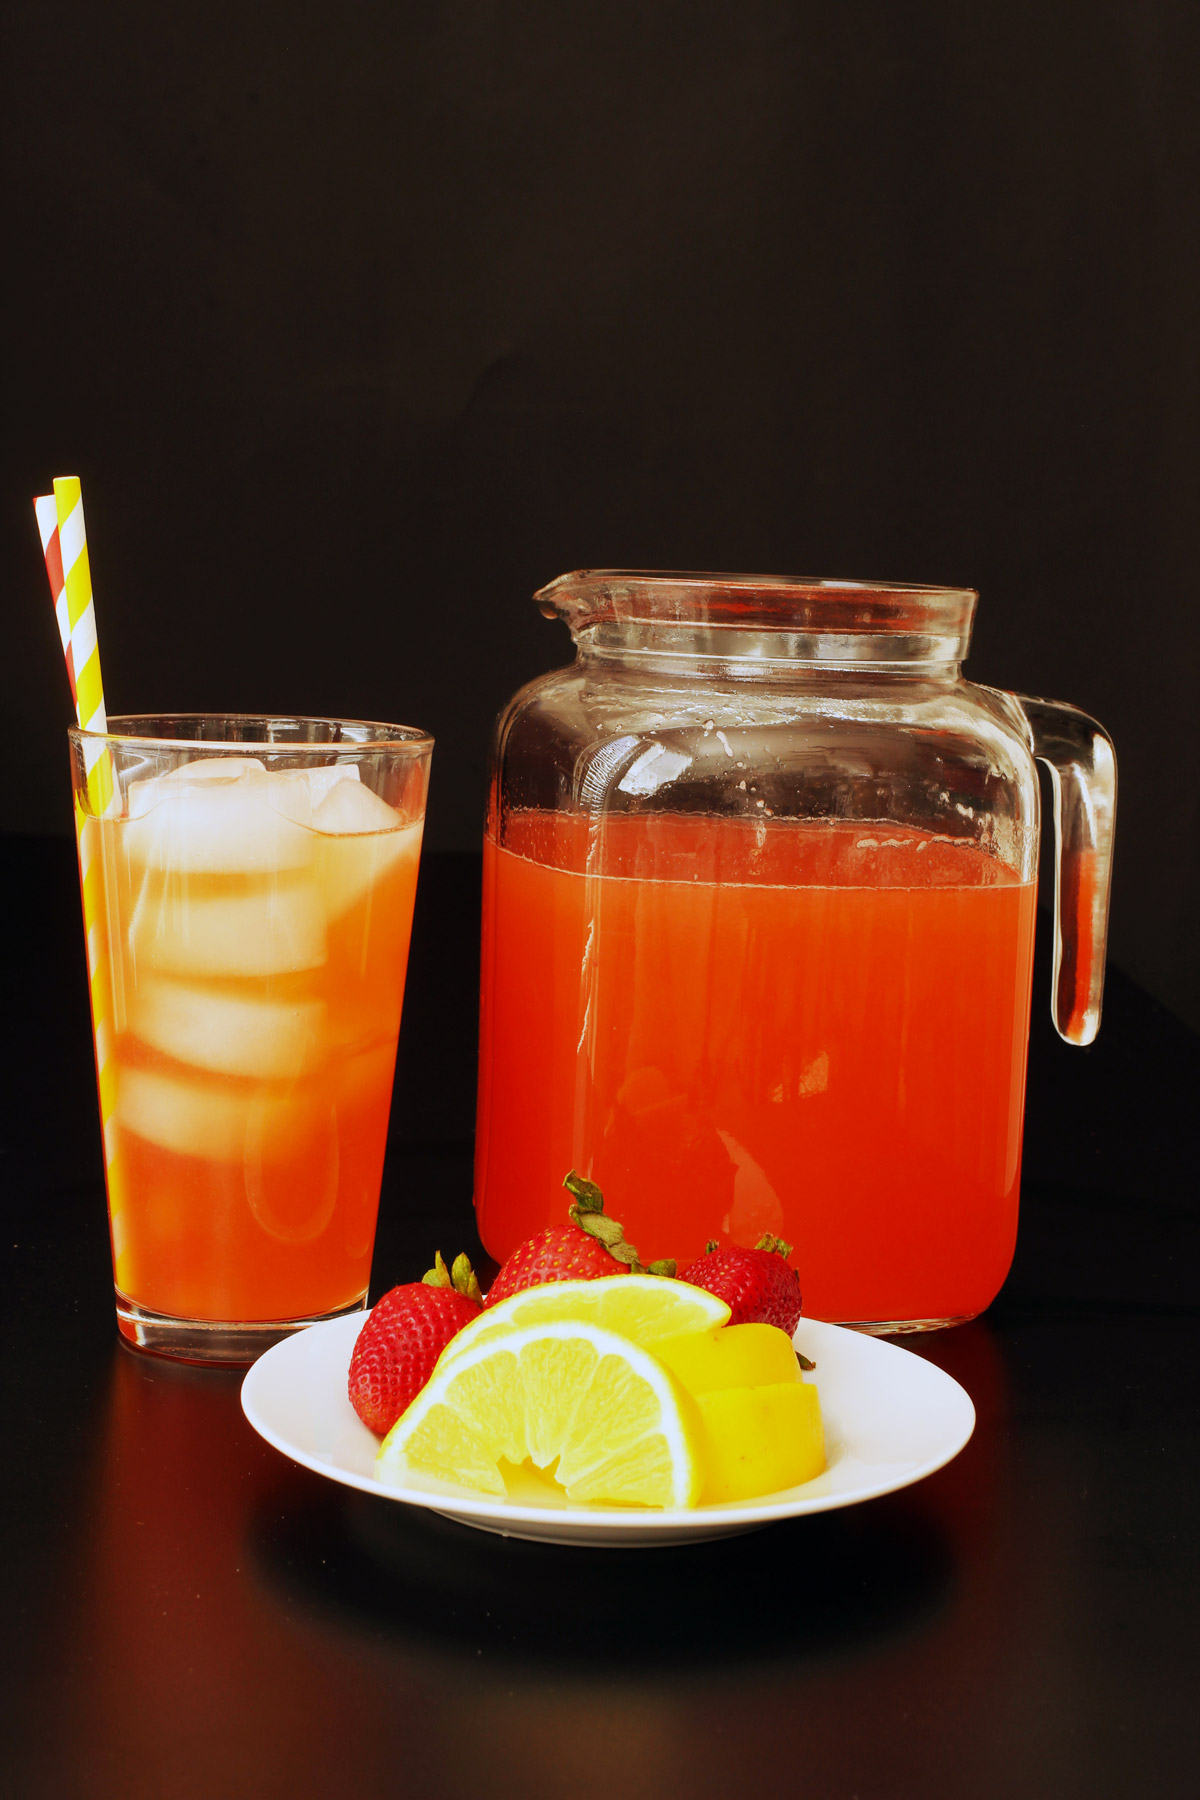 sideview of glass of lemonade, full pitcher, and plate of strawberries and lemon wedges